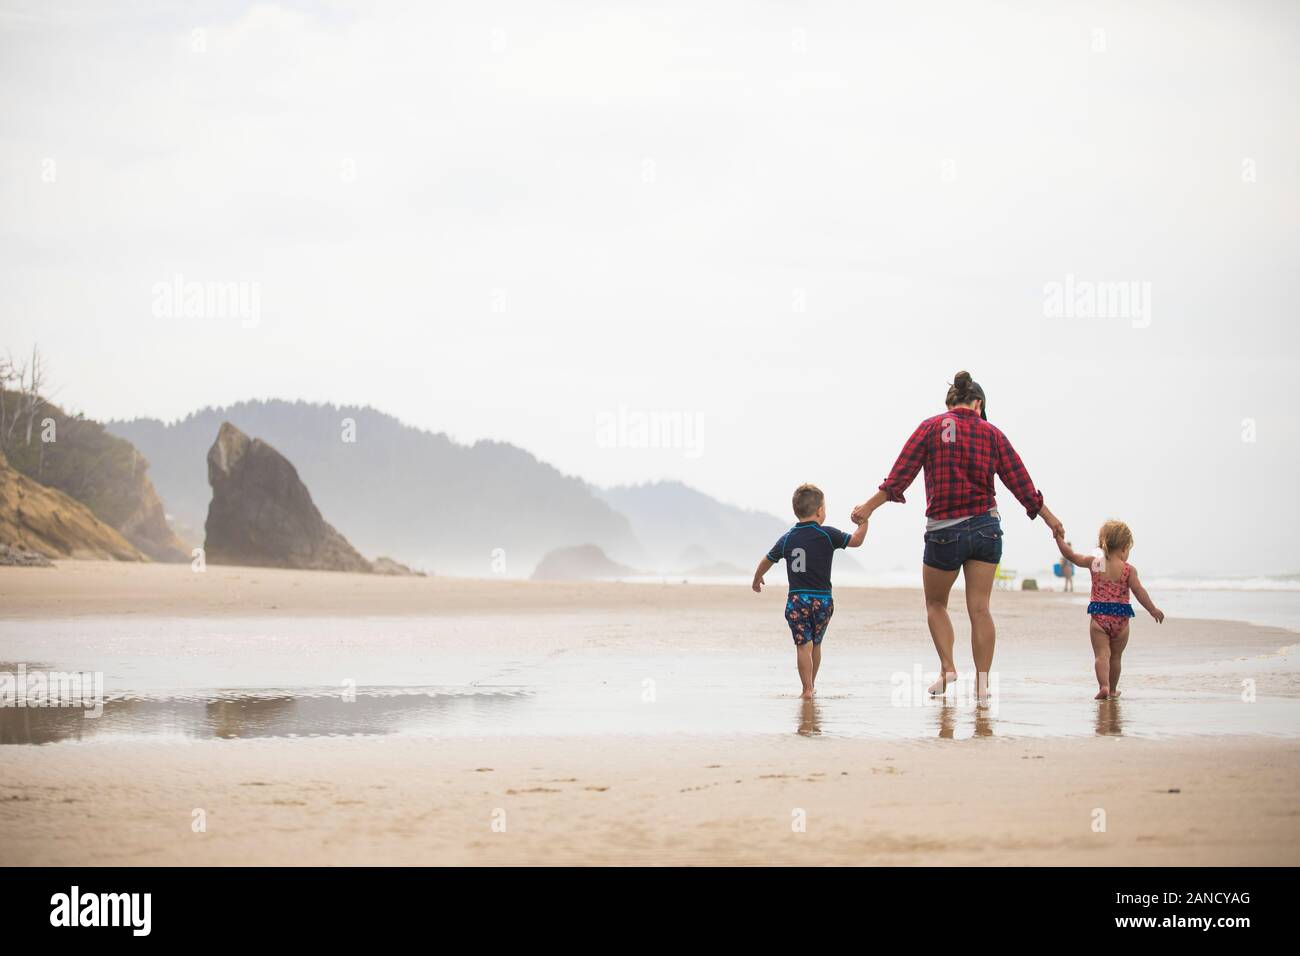 Rear view of mother walking on beach with her two young children. Stock Photo